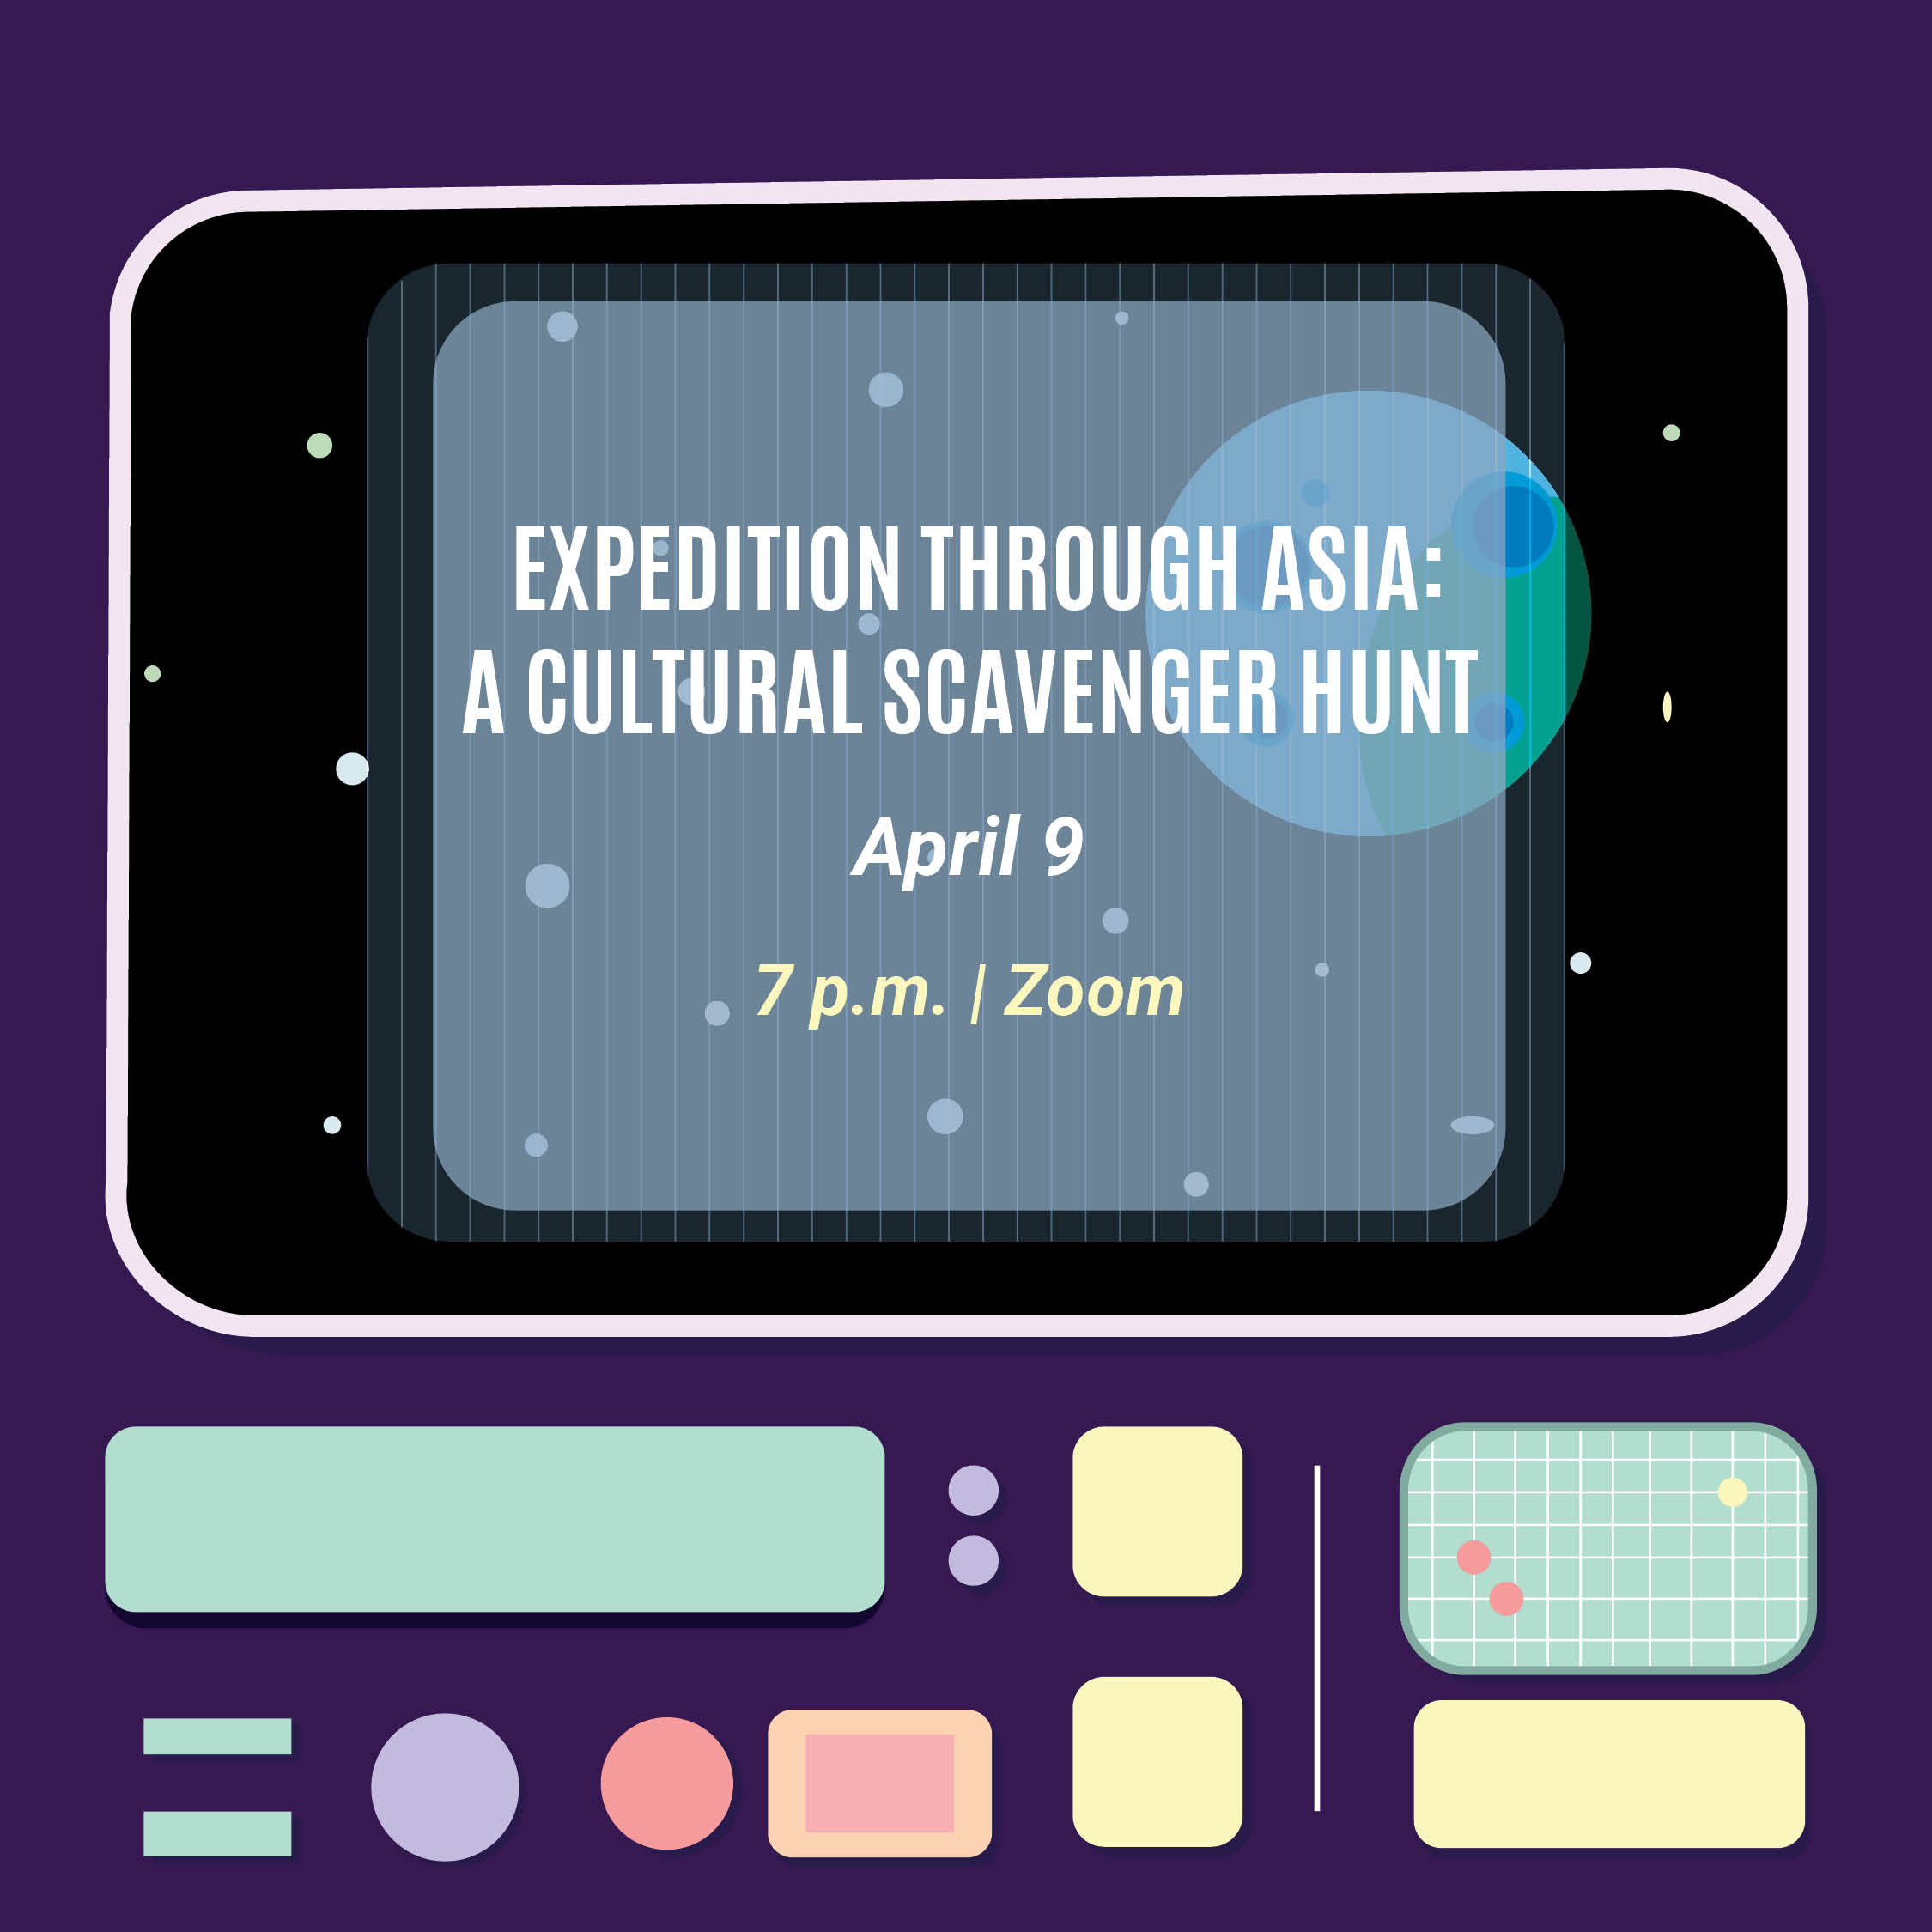 Expedition Through Asia: A Cultural Scavenger Hunt